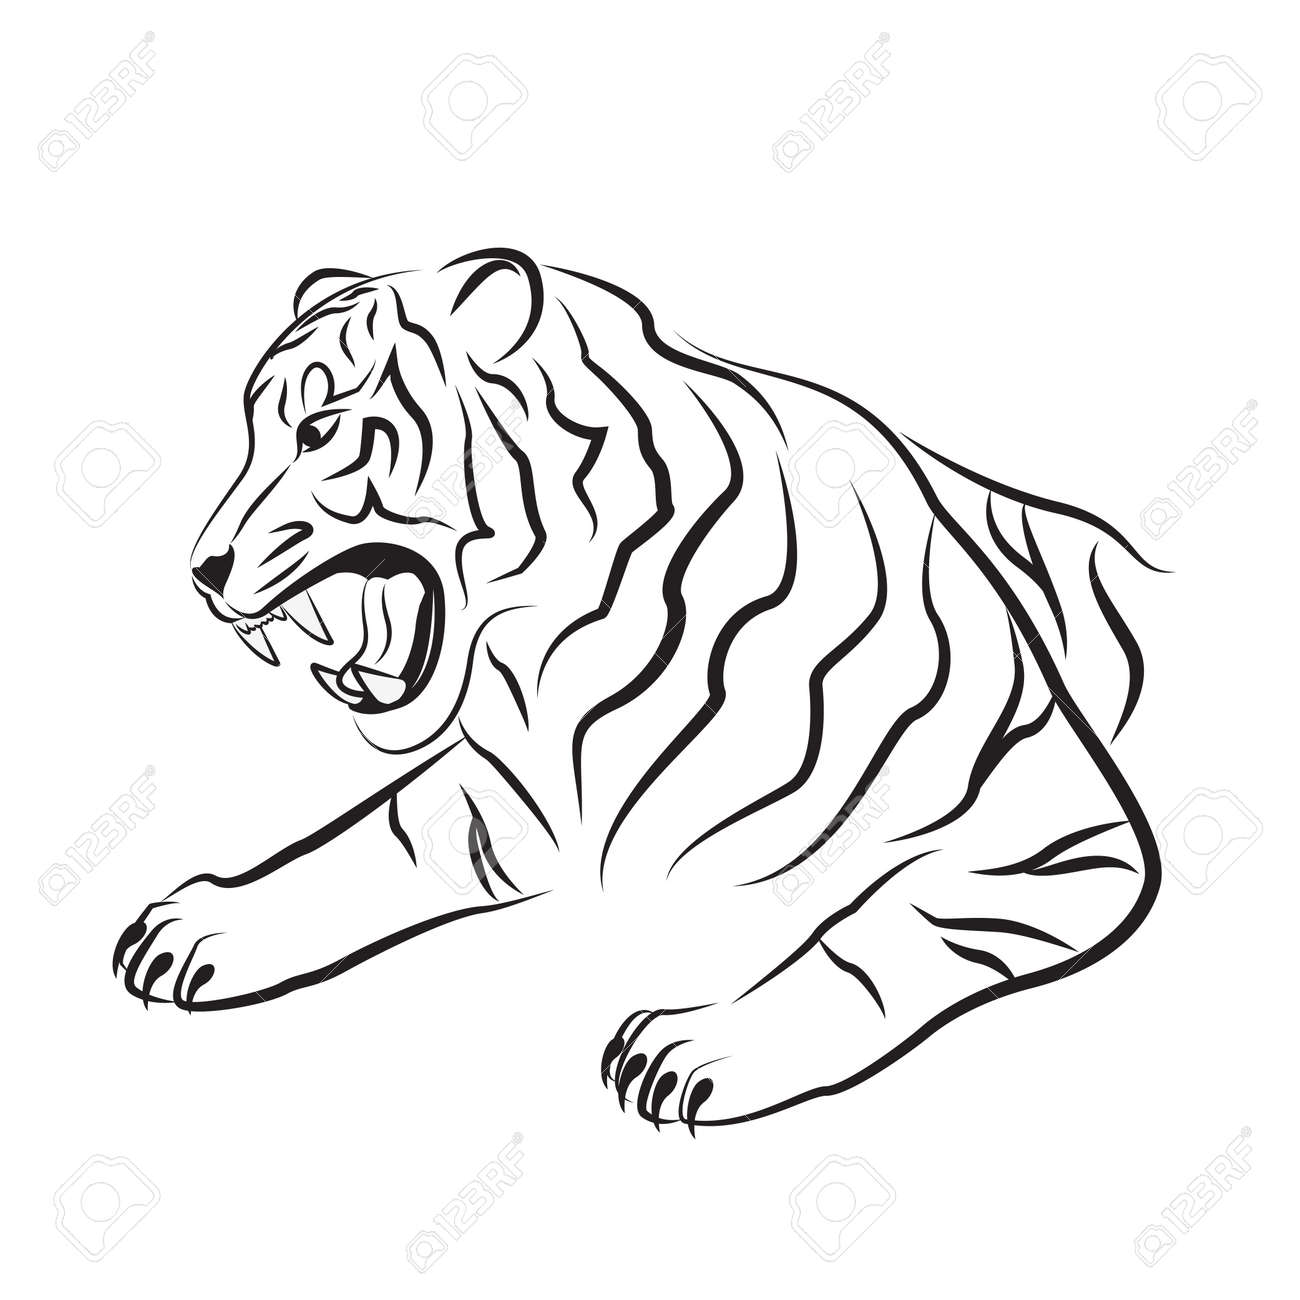 b82c479415a05 Illustration of angry tiger. Tribal art. Black tattoo. Silhouette of tiger  head.